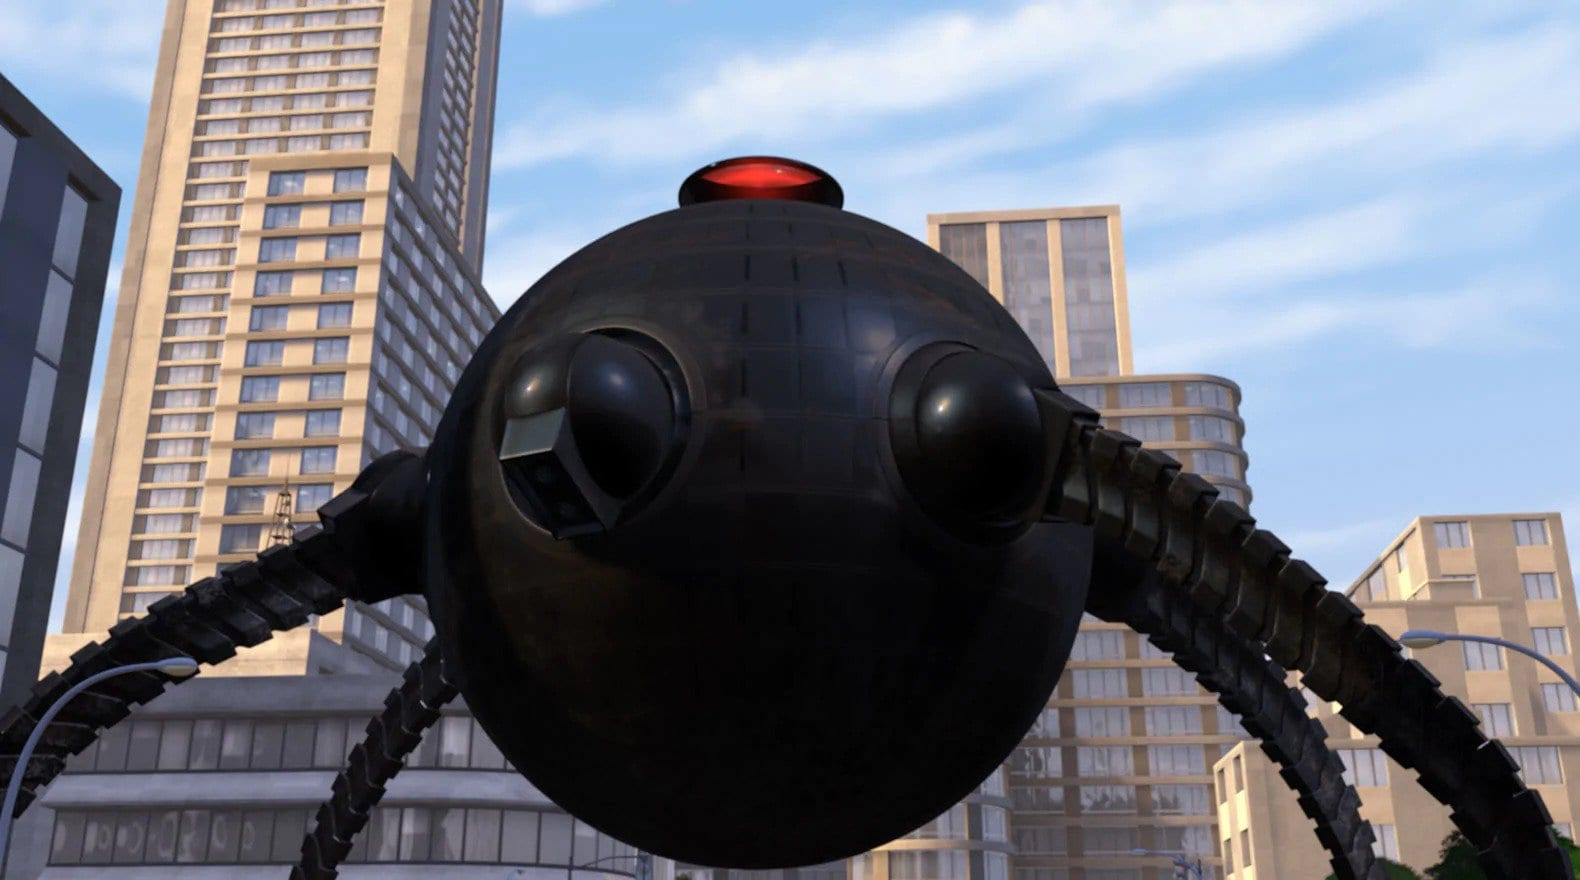 Omnidroid in The Incredibles